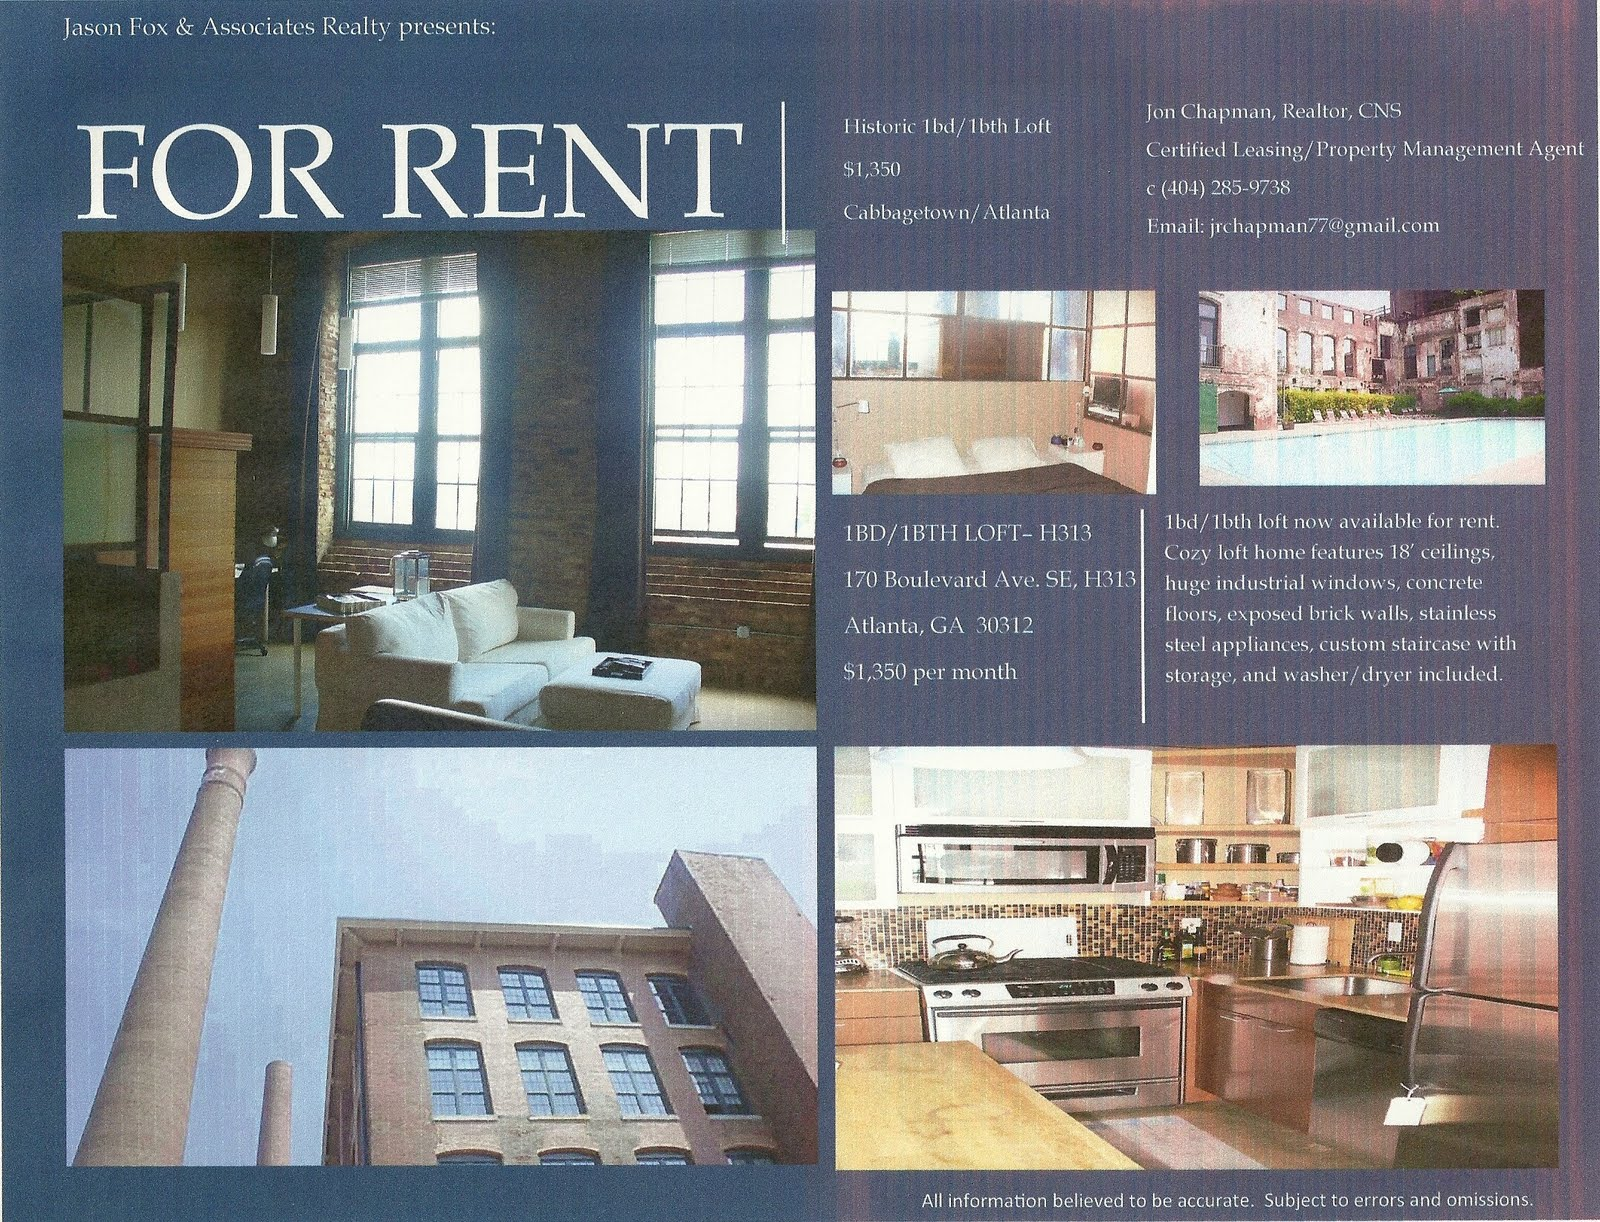 Atlanta Real Estate LEASED 1bd 1bth Historic Loft At The Stacks Lofts FOR